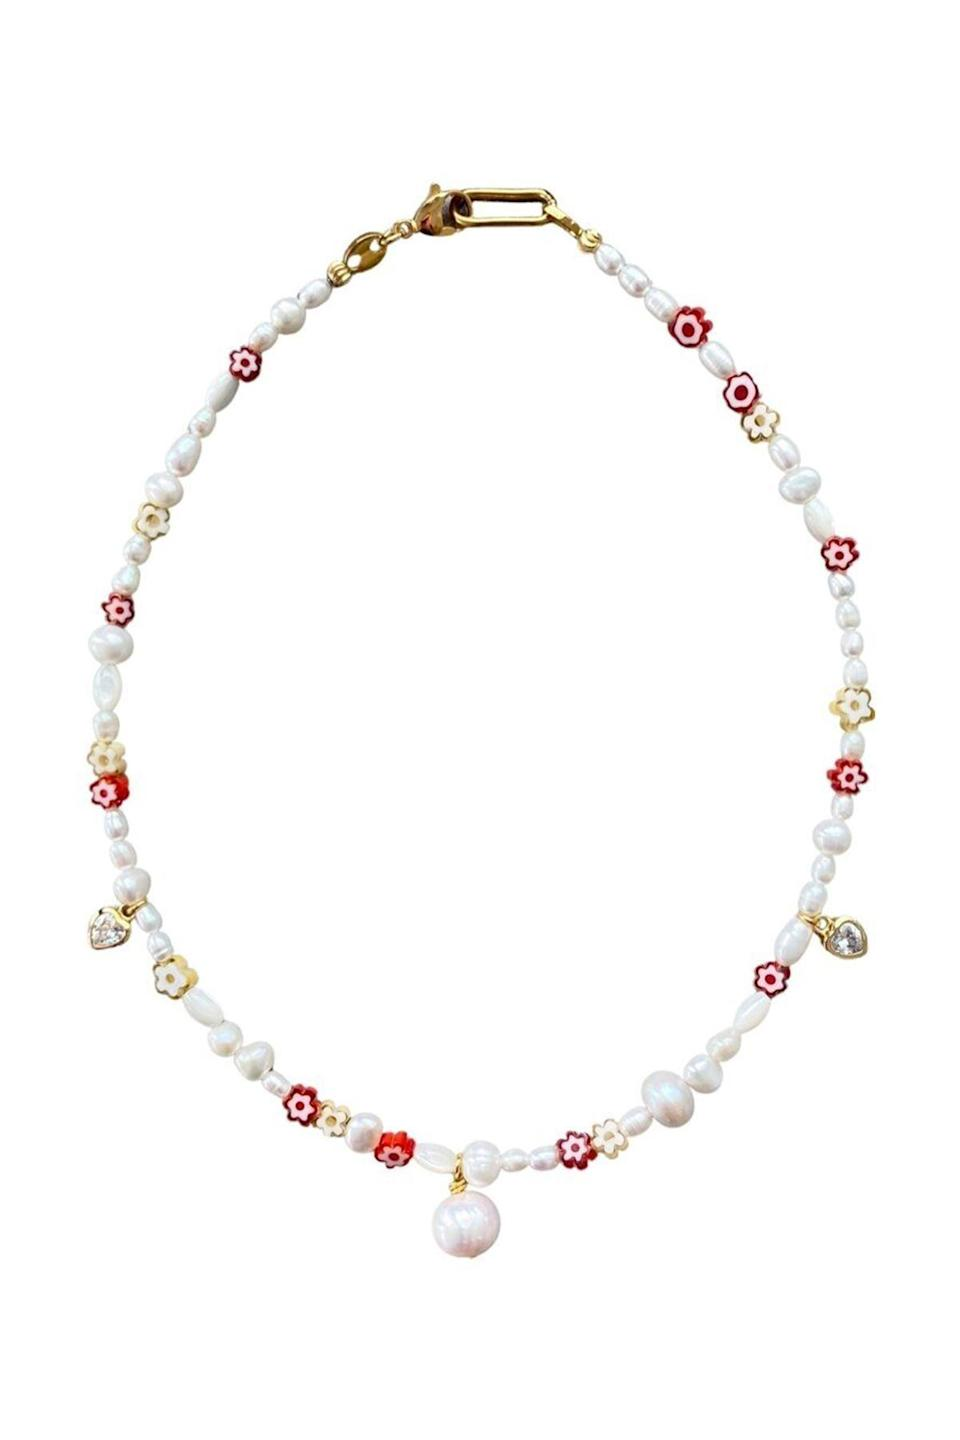 """<p><strong>Notte Jewelry</strong></p><p>nottejewelry.com</p><p><strong>$122.00</strong></p><p><a href=""""https://go.redirectingat.com?id=74968X1596630&url=https%3A%2F%2Fnottejewelry.com%2Fnecklaces%2Fboboli-pearly-necklace-copy&sref=https%3A%2F%2Fwww.townandcountrymag.com%2Fstyle%2Fjewelry-and-watches%2Fg36396130%2Fbest-beaded-necklaces%2F"""" rel=""""nofollow noopener"""" target=""""_blank"""" data-ylk=""""slk:Shop Now"""" class=""""link rapid-noclick-resp"""">Shop Now</a></p><p>This handmade necklace by Notte Jewelry promises to bring some extra joy into your day to day, and it definitely delivers. </p>"""